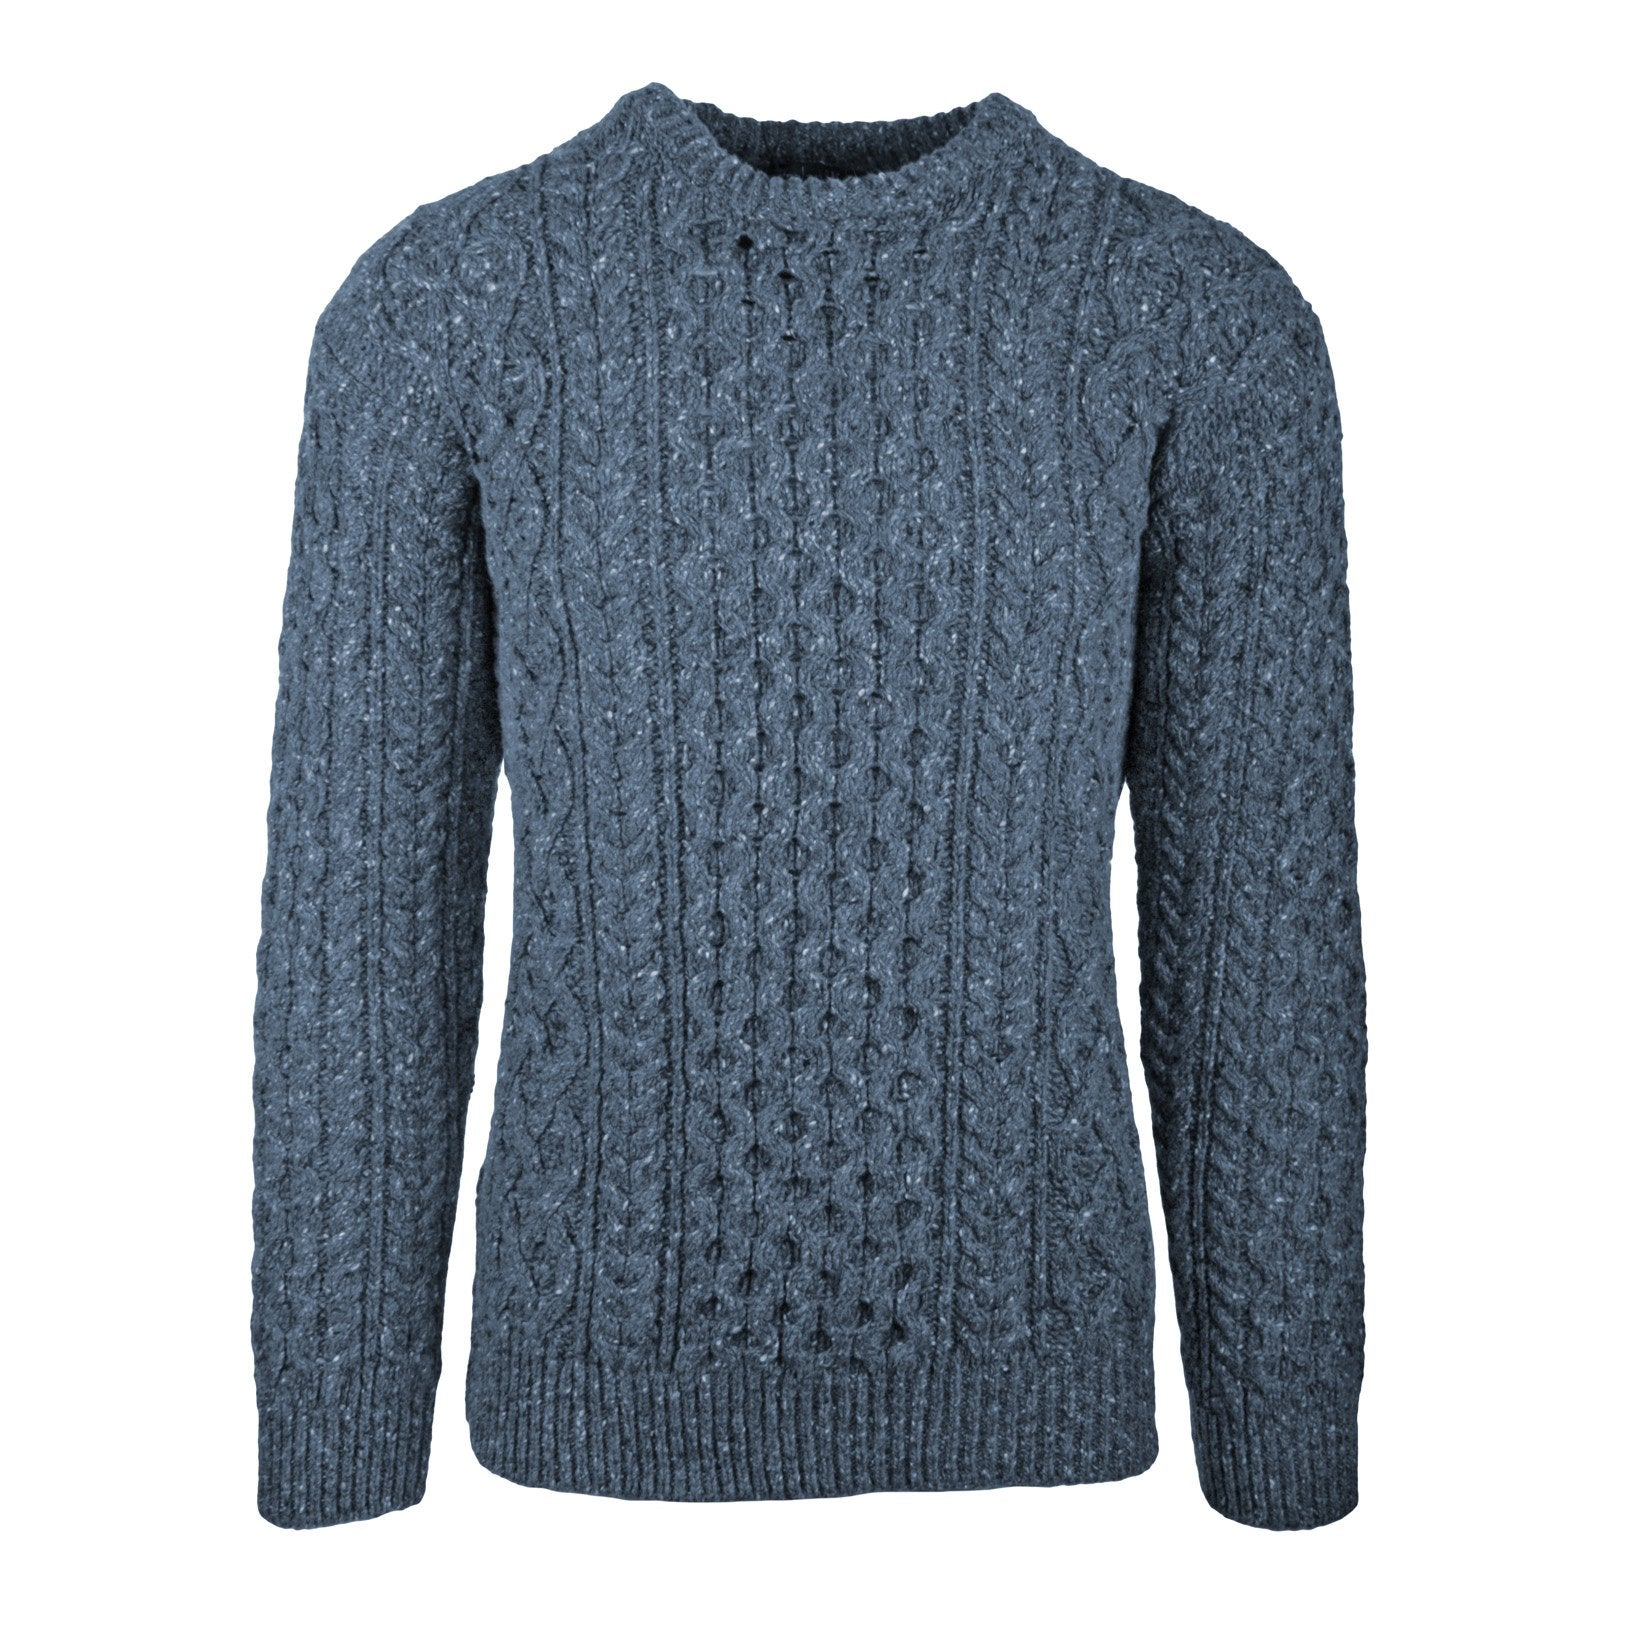 Ireland Eye - Carriag Luxe Aran Sweater - Ocean